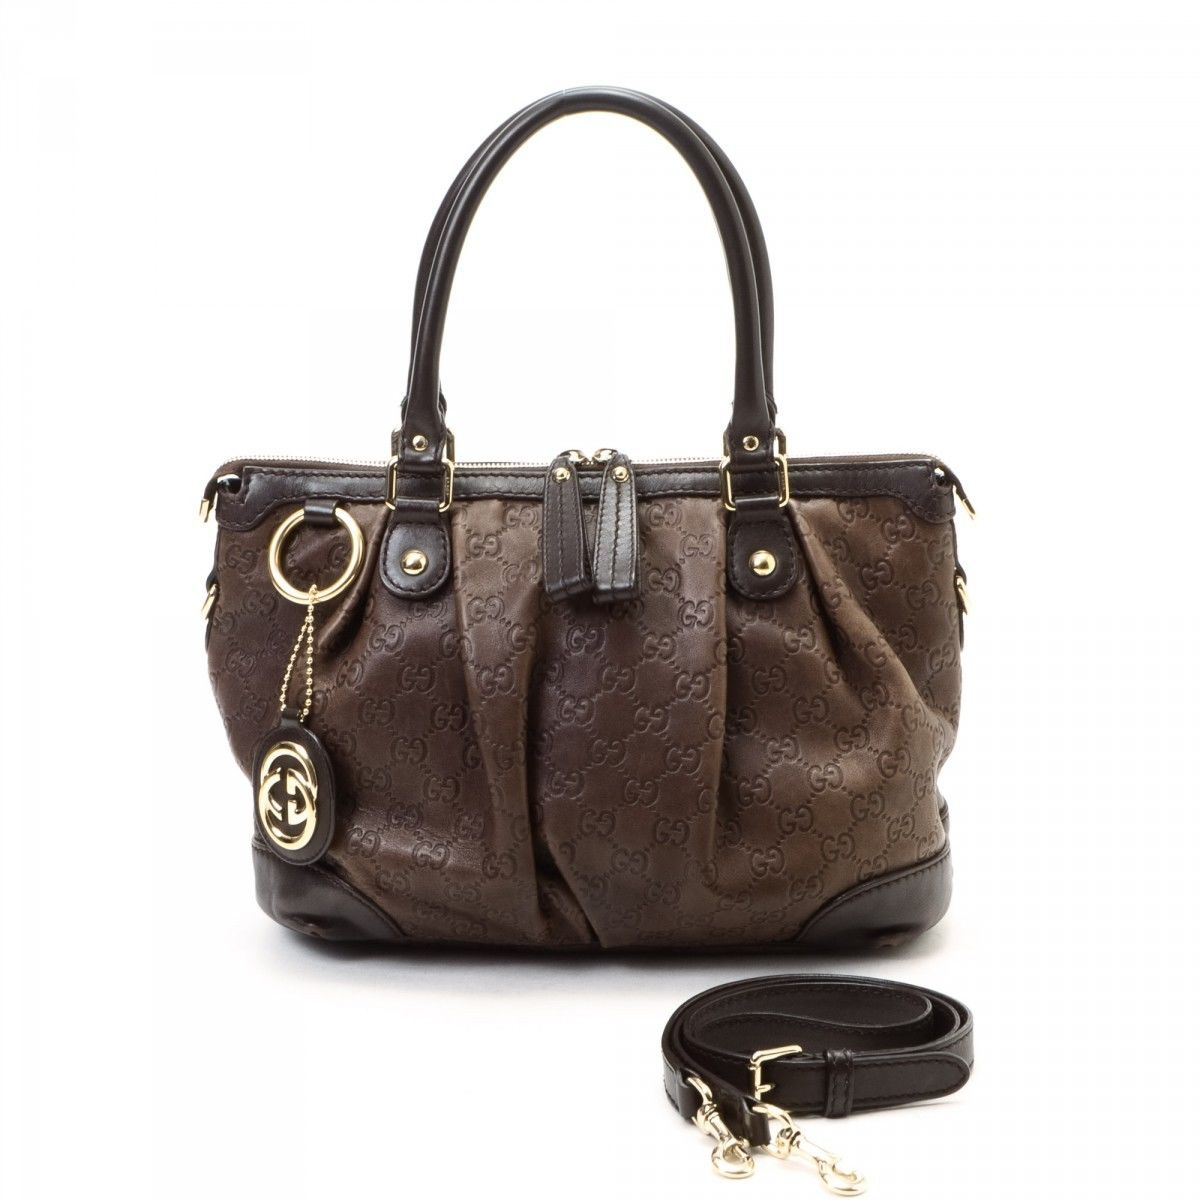 Gucci Pre-owned - Leather 24h bag ojBK09mq